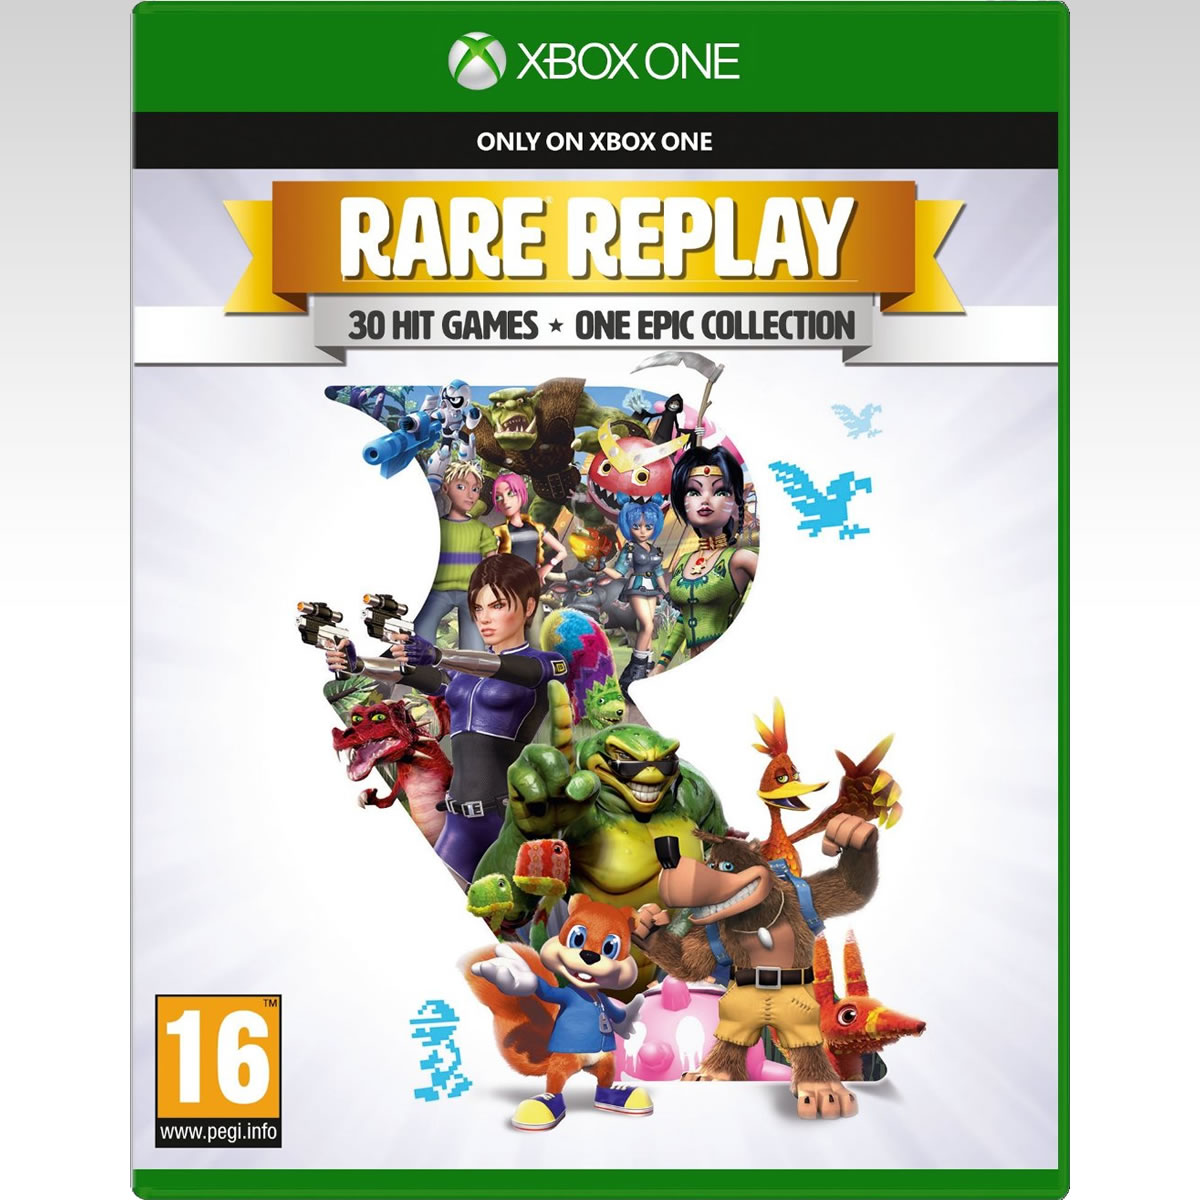 RARE REPLAY - 30 HIT GAMES COLLECTION (XBOX ONE)